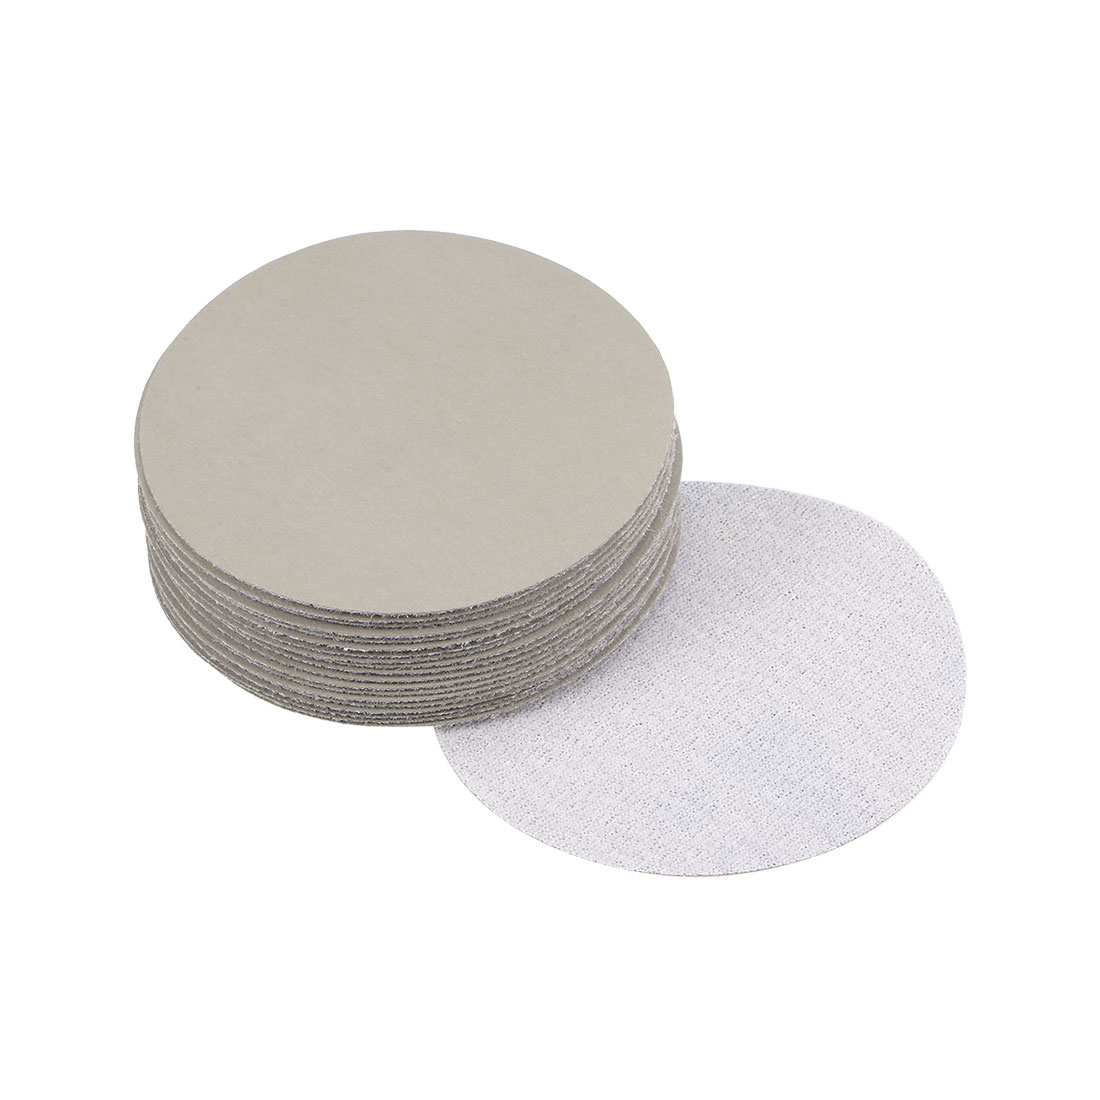 3 inch Wet Dry Discs 4000 Grit Hook and Loop Sanding Disc Silicon Carbide 20pcs